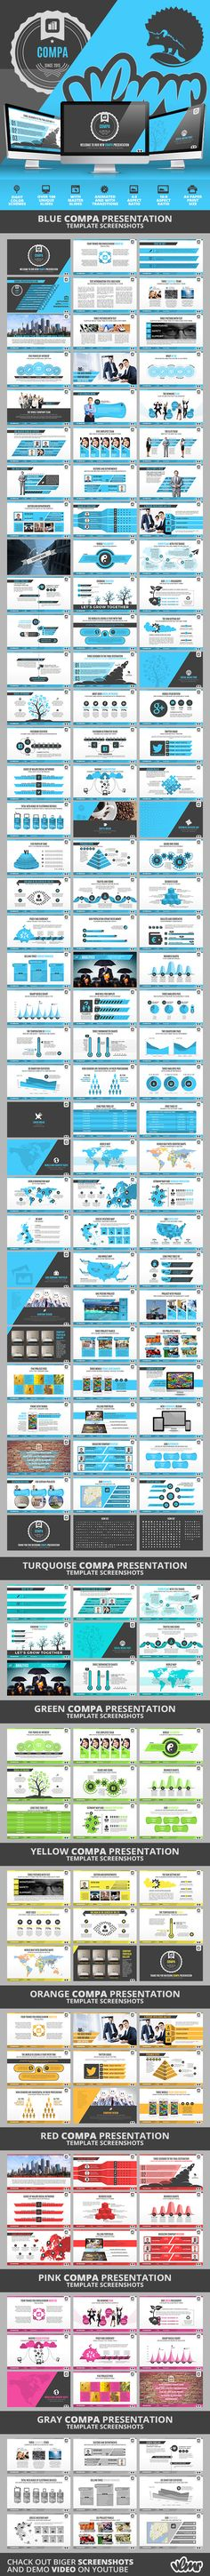 Compa PowerPoint Presentation Template #design #slides Download: http://graphicriver.net/item/compa-powerpoint-presentation-template/11378342?ref=ksioks